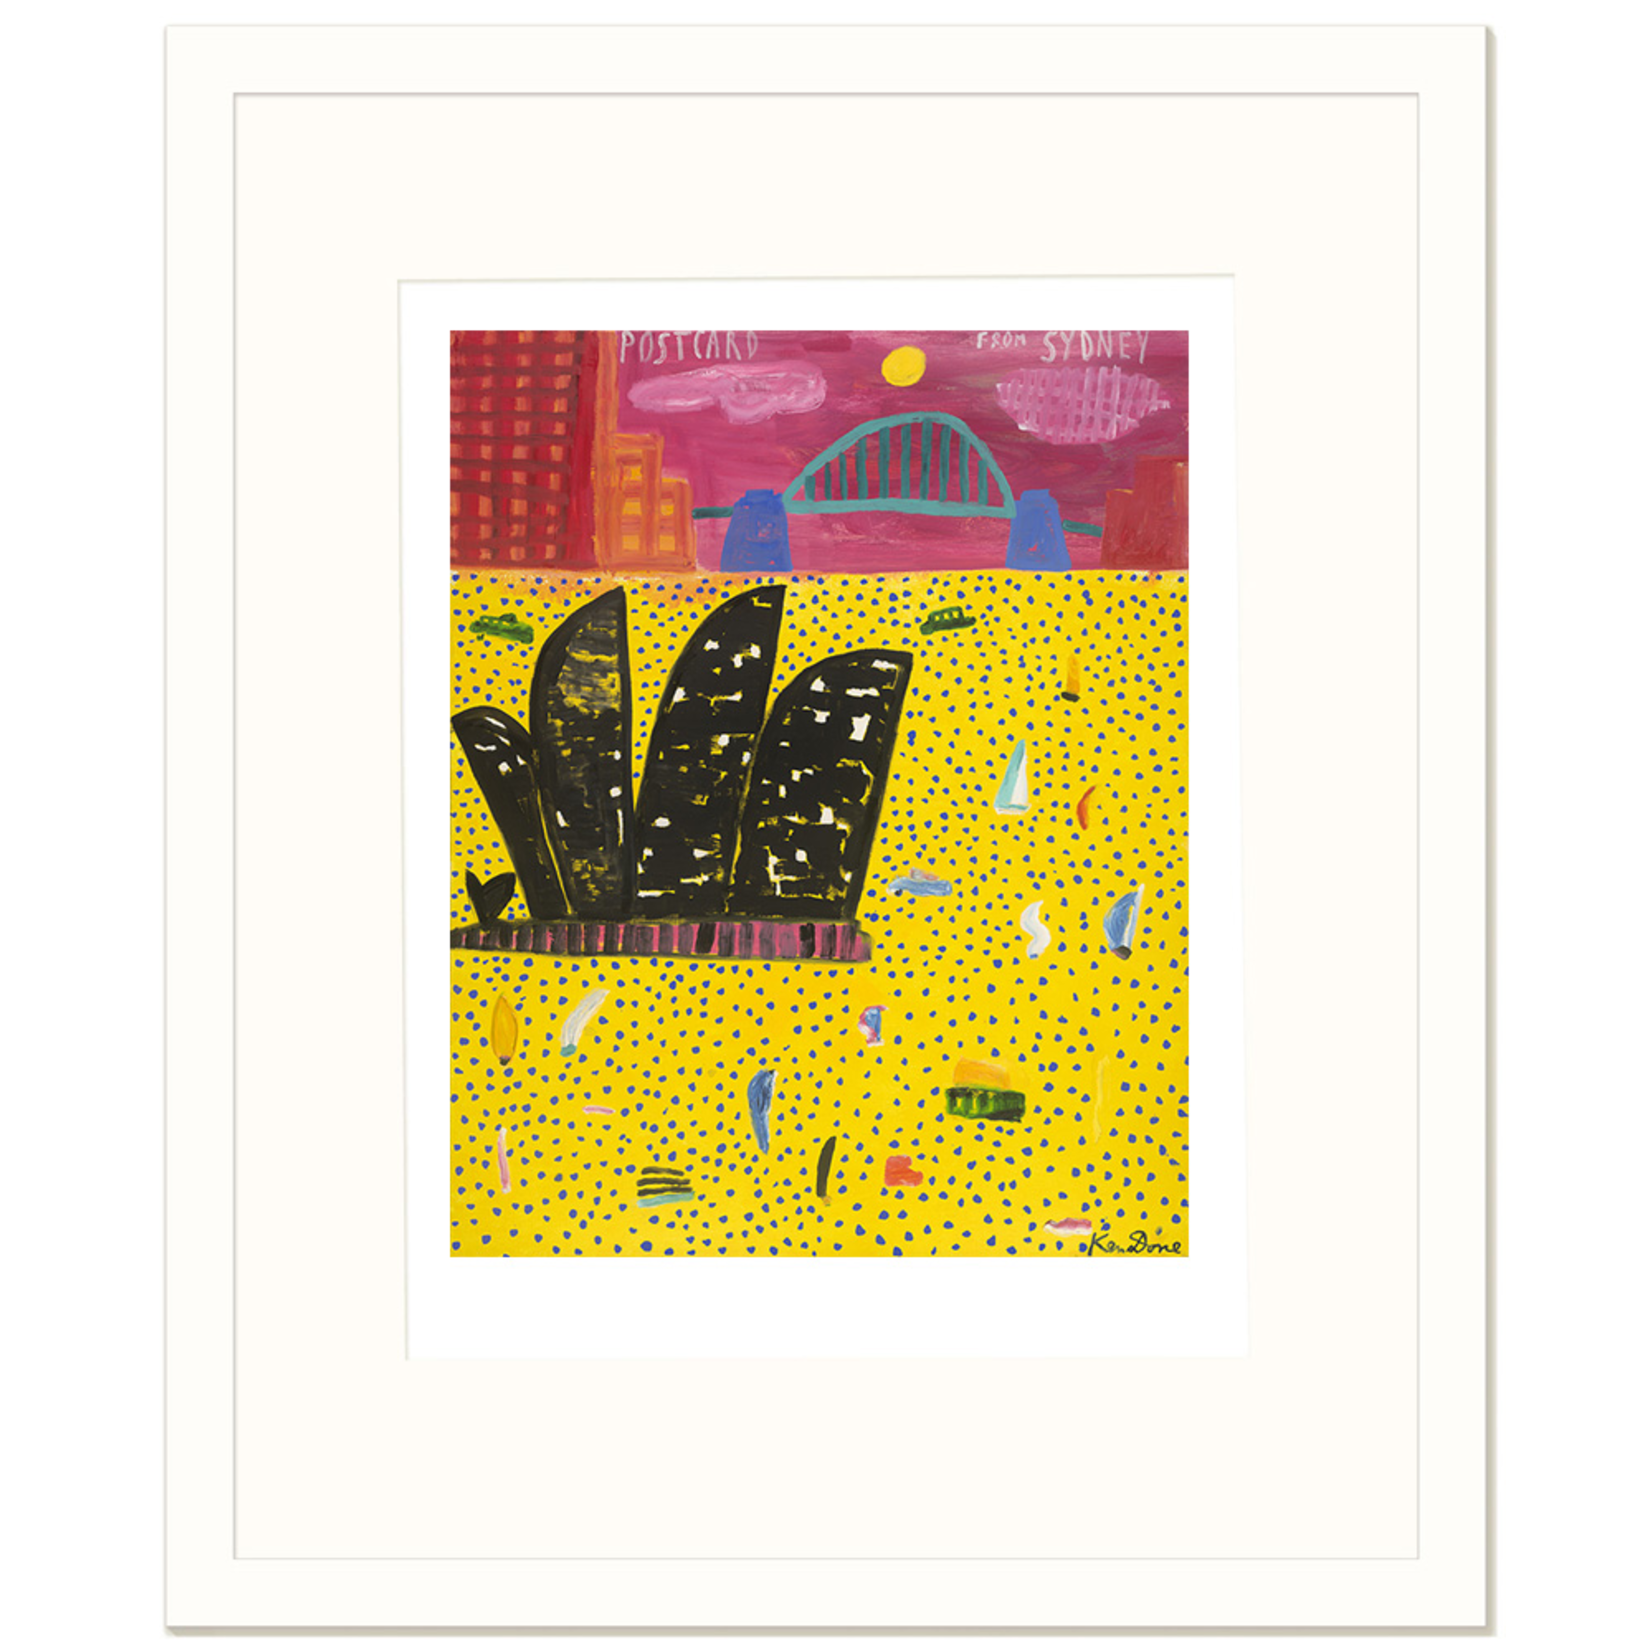 Limited Edition Prints Postcard from Sydney, yellow spotted sea, 2016